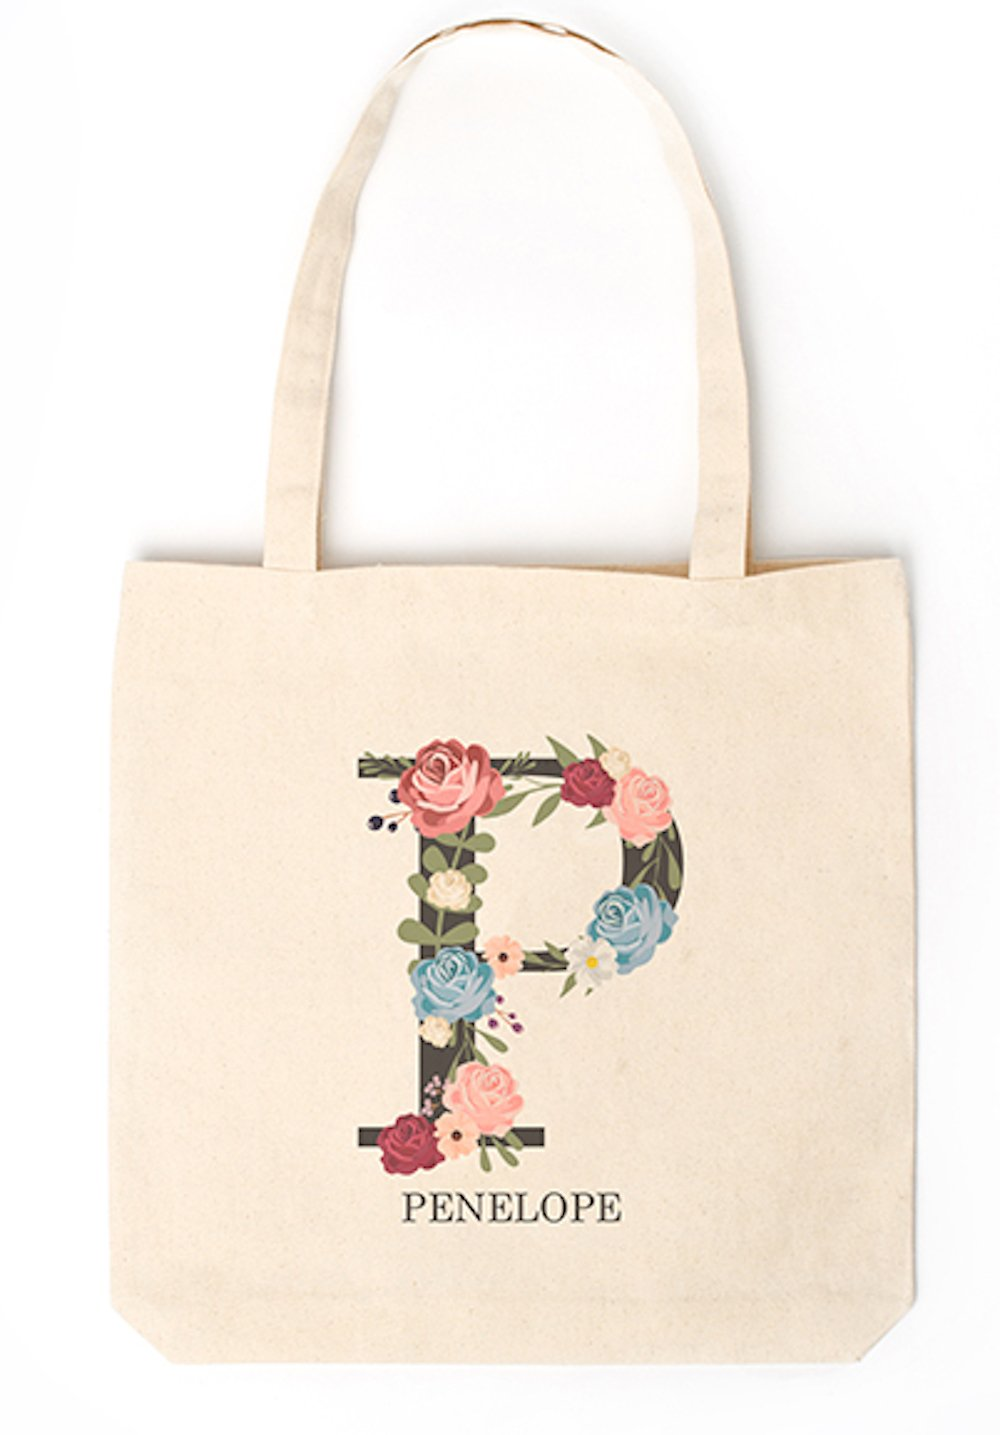 Personalized Monogram Tote - Unique Monogrammed Tote Bags Gifts for Women, Also a Gift for Mom (Letter P)